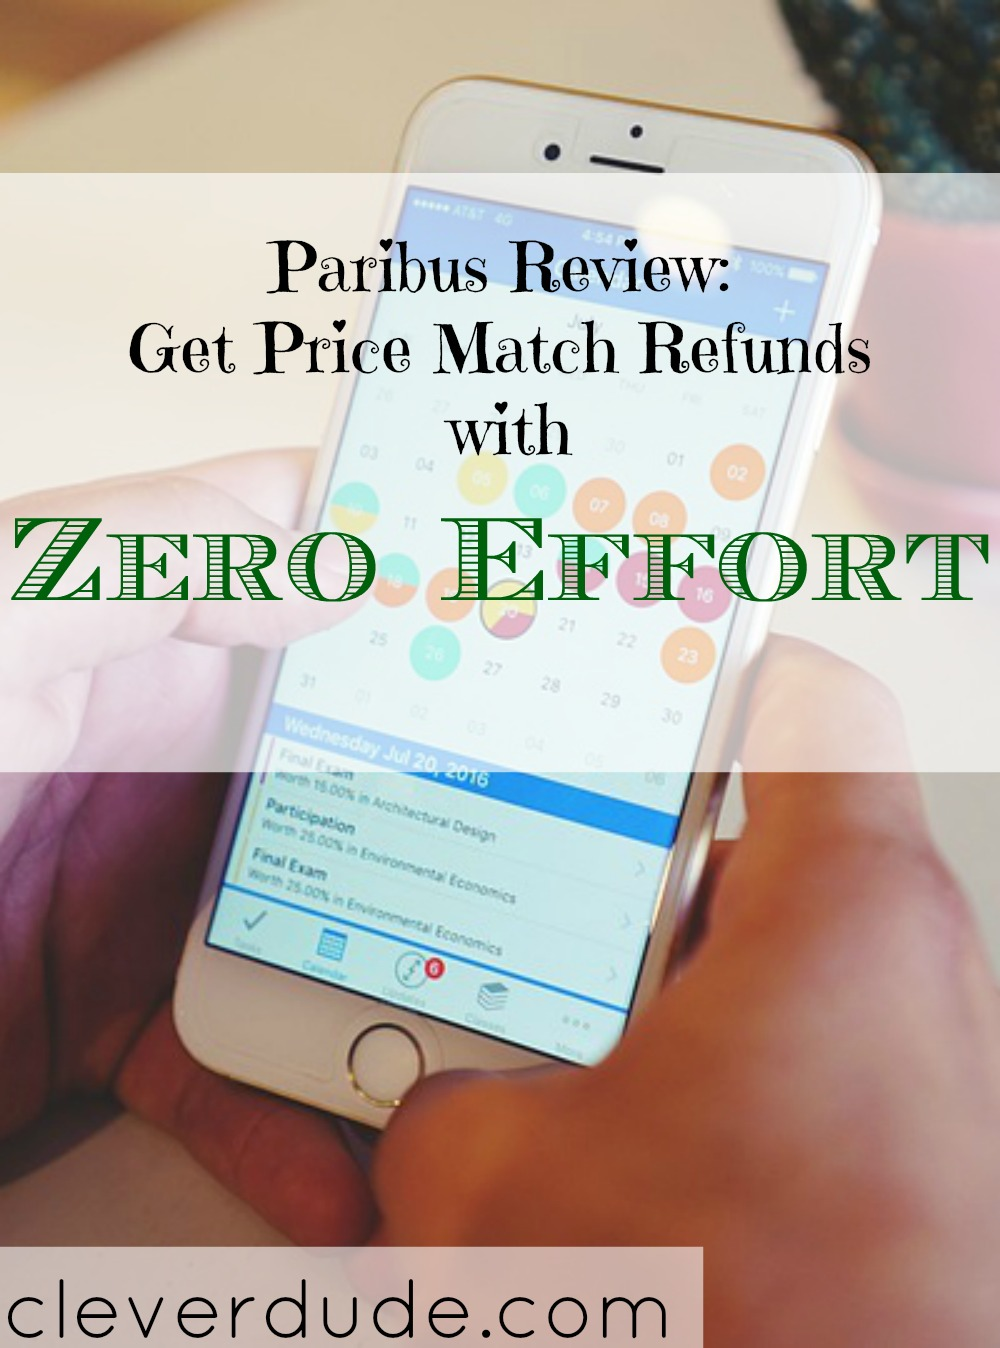 saving money through online shopping, paribus app, price match refunds